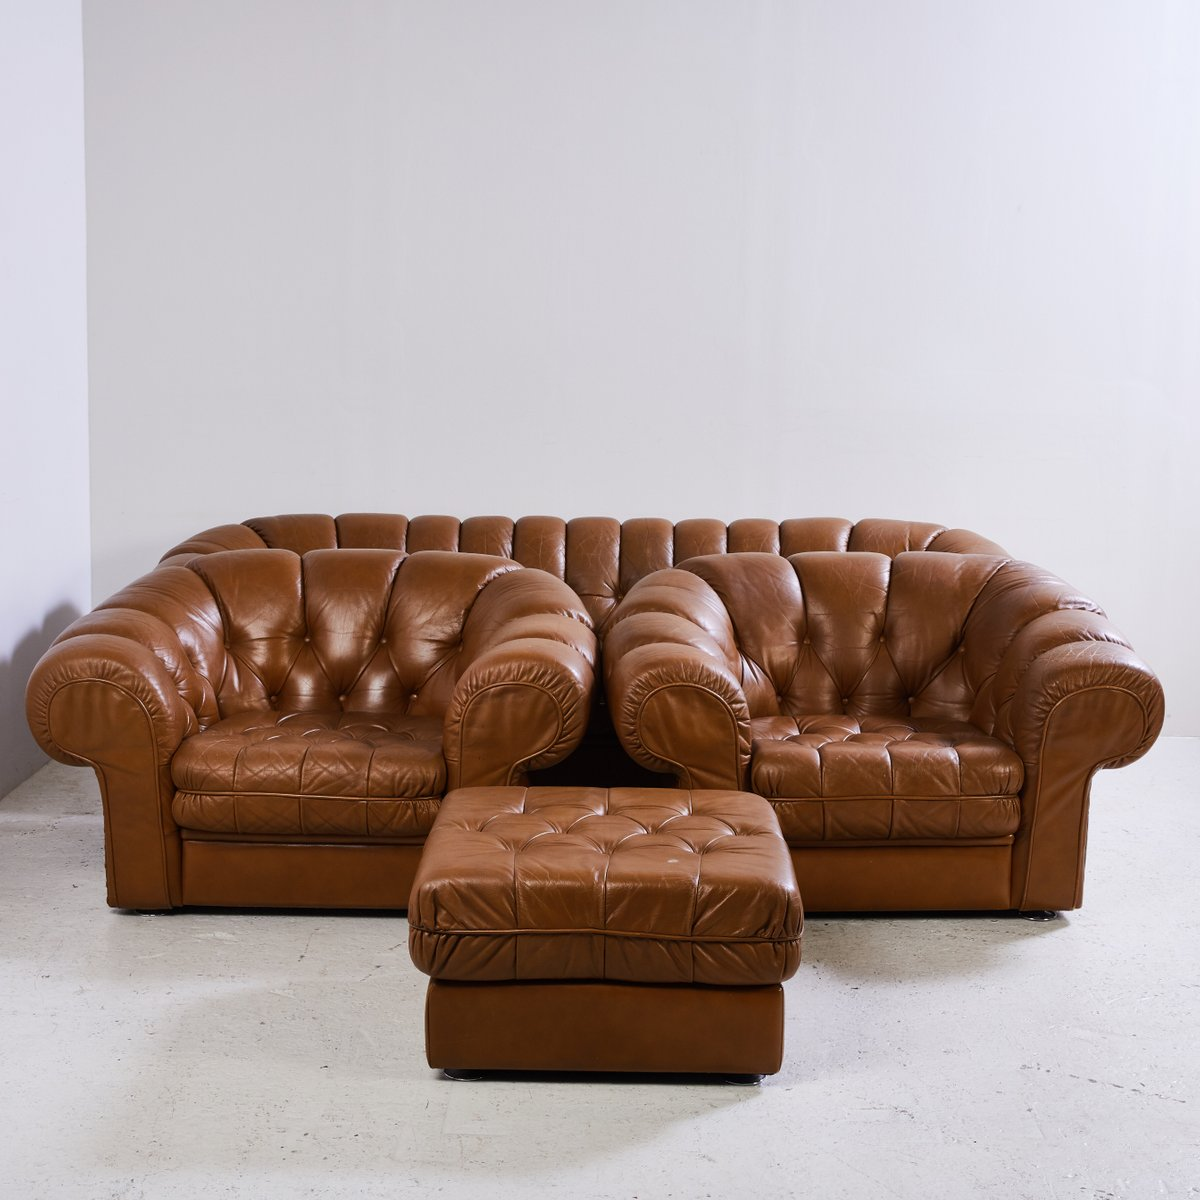 Chesterfield Sofa Leder Chesterfield Sofa Set Aus Leder 1970er Bei Pamono Kaufen